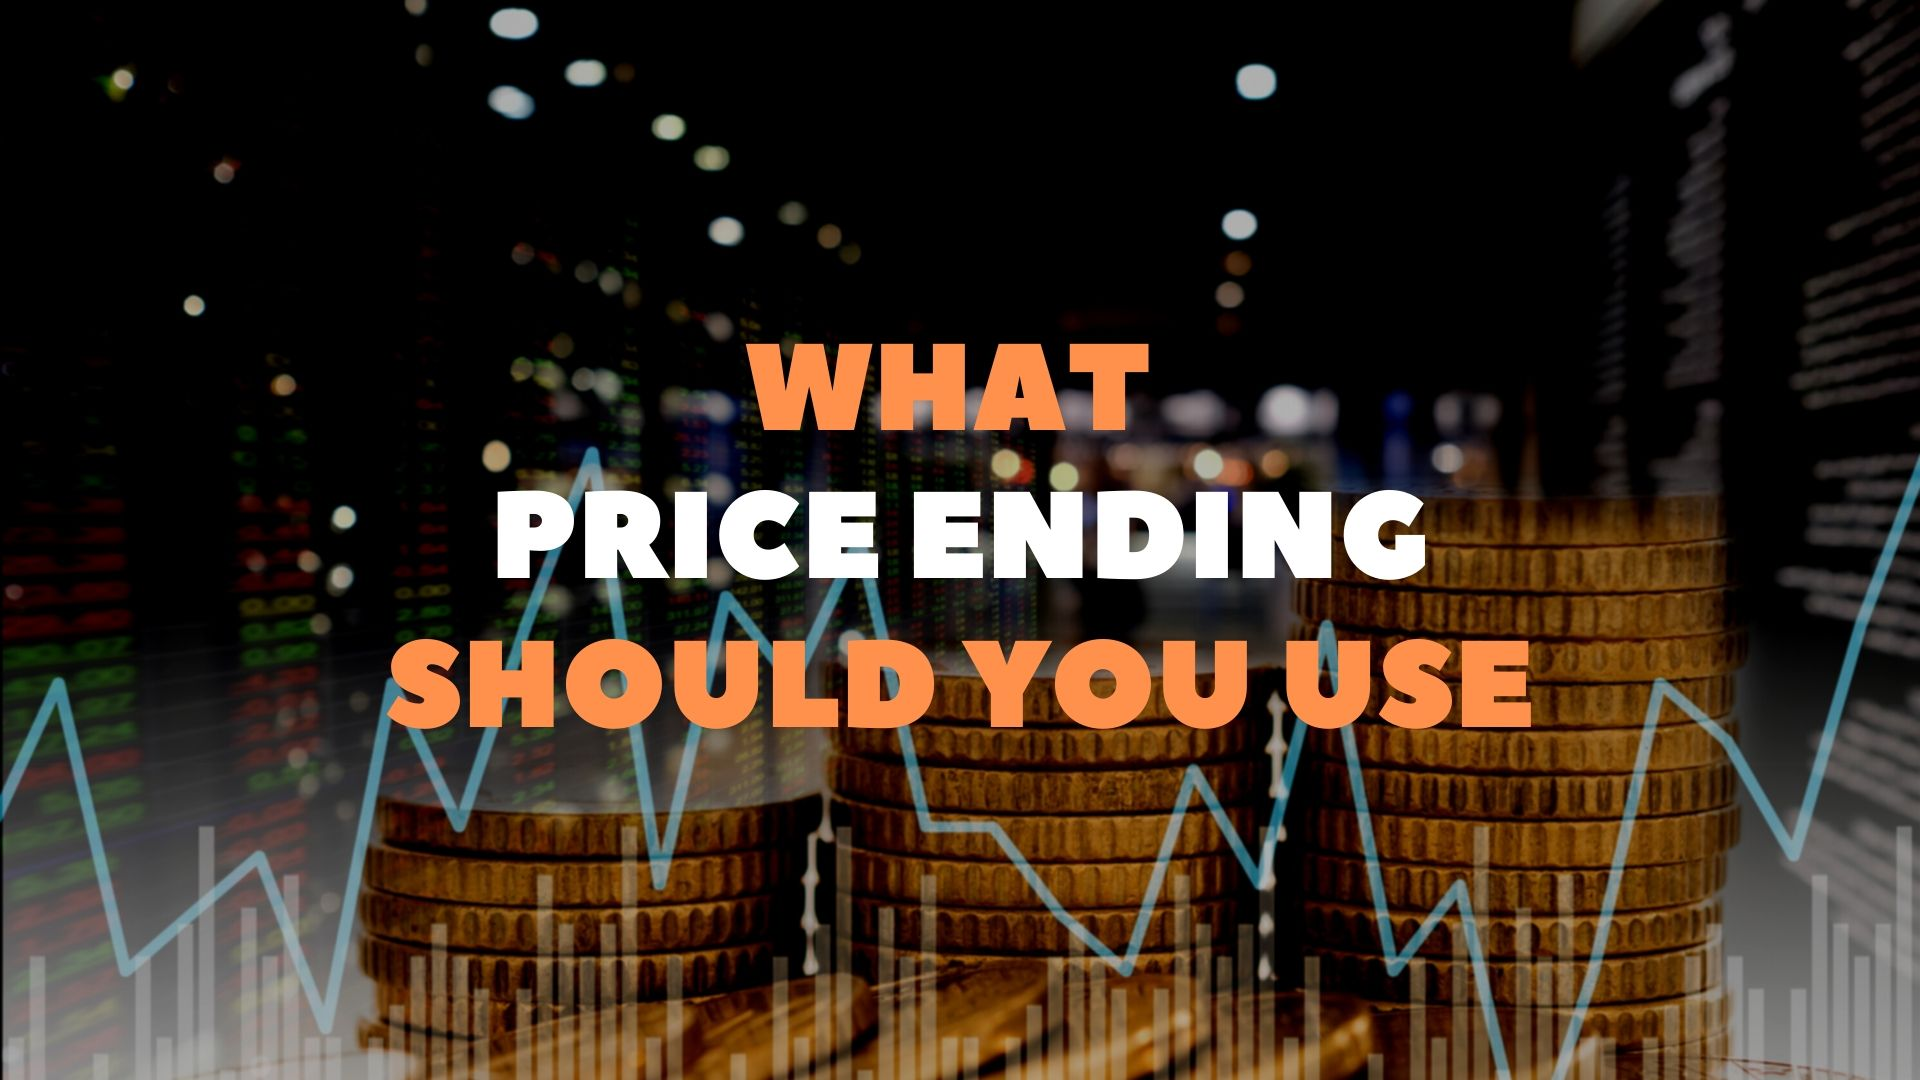 What price ending should you use